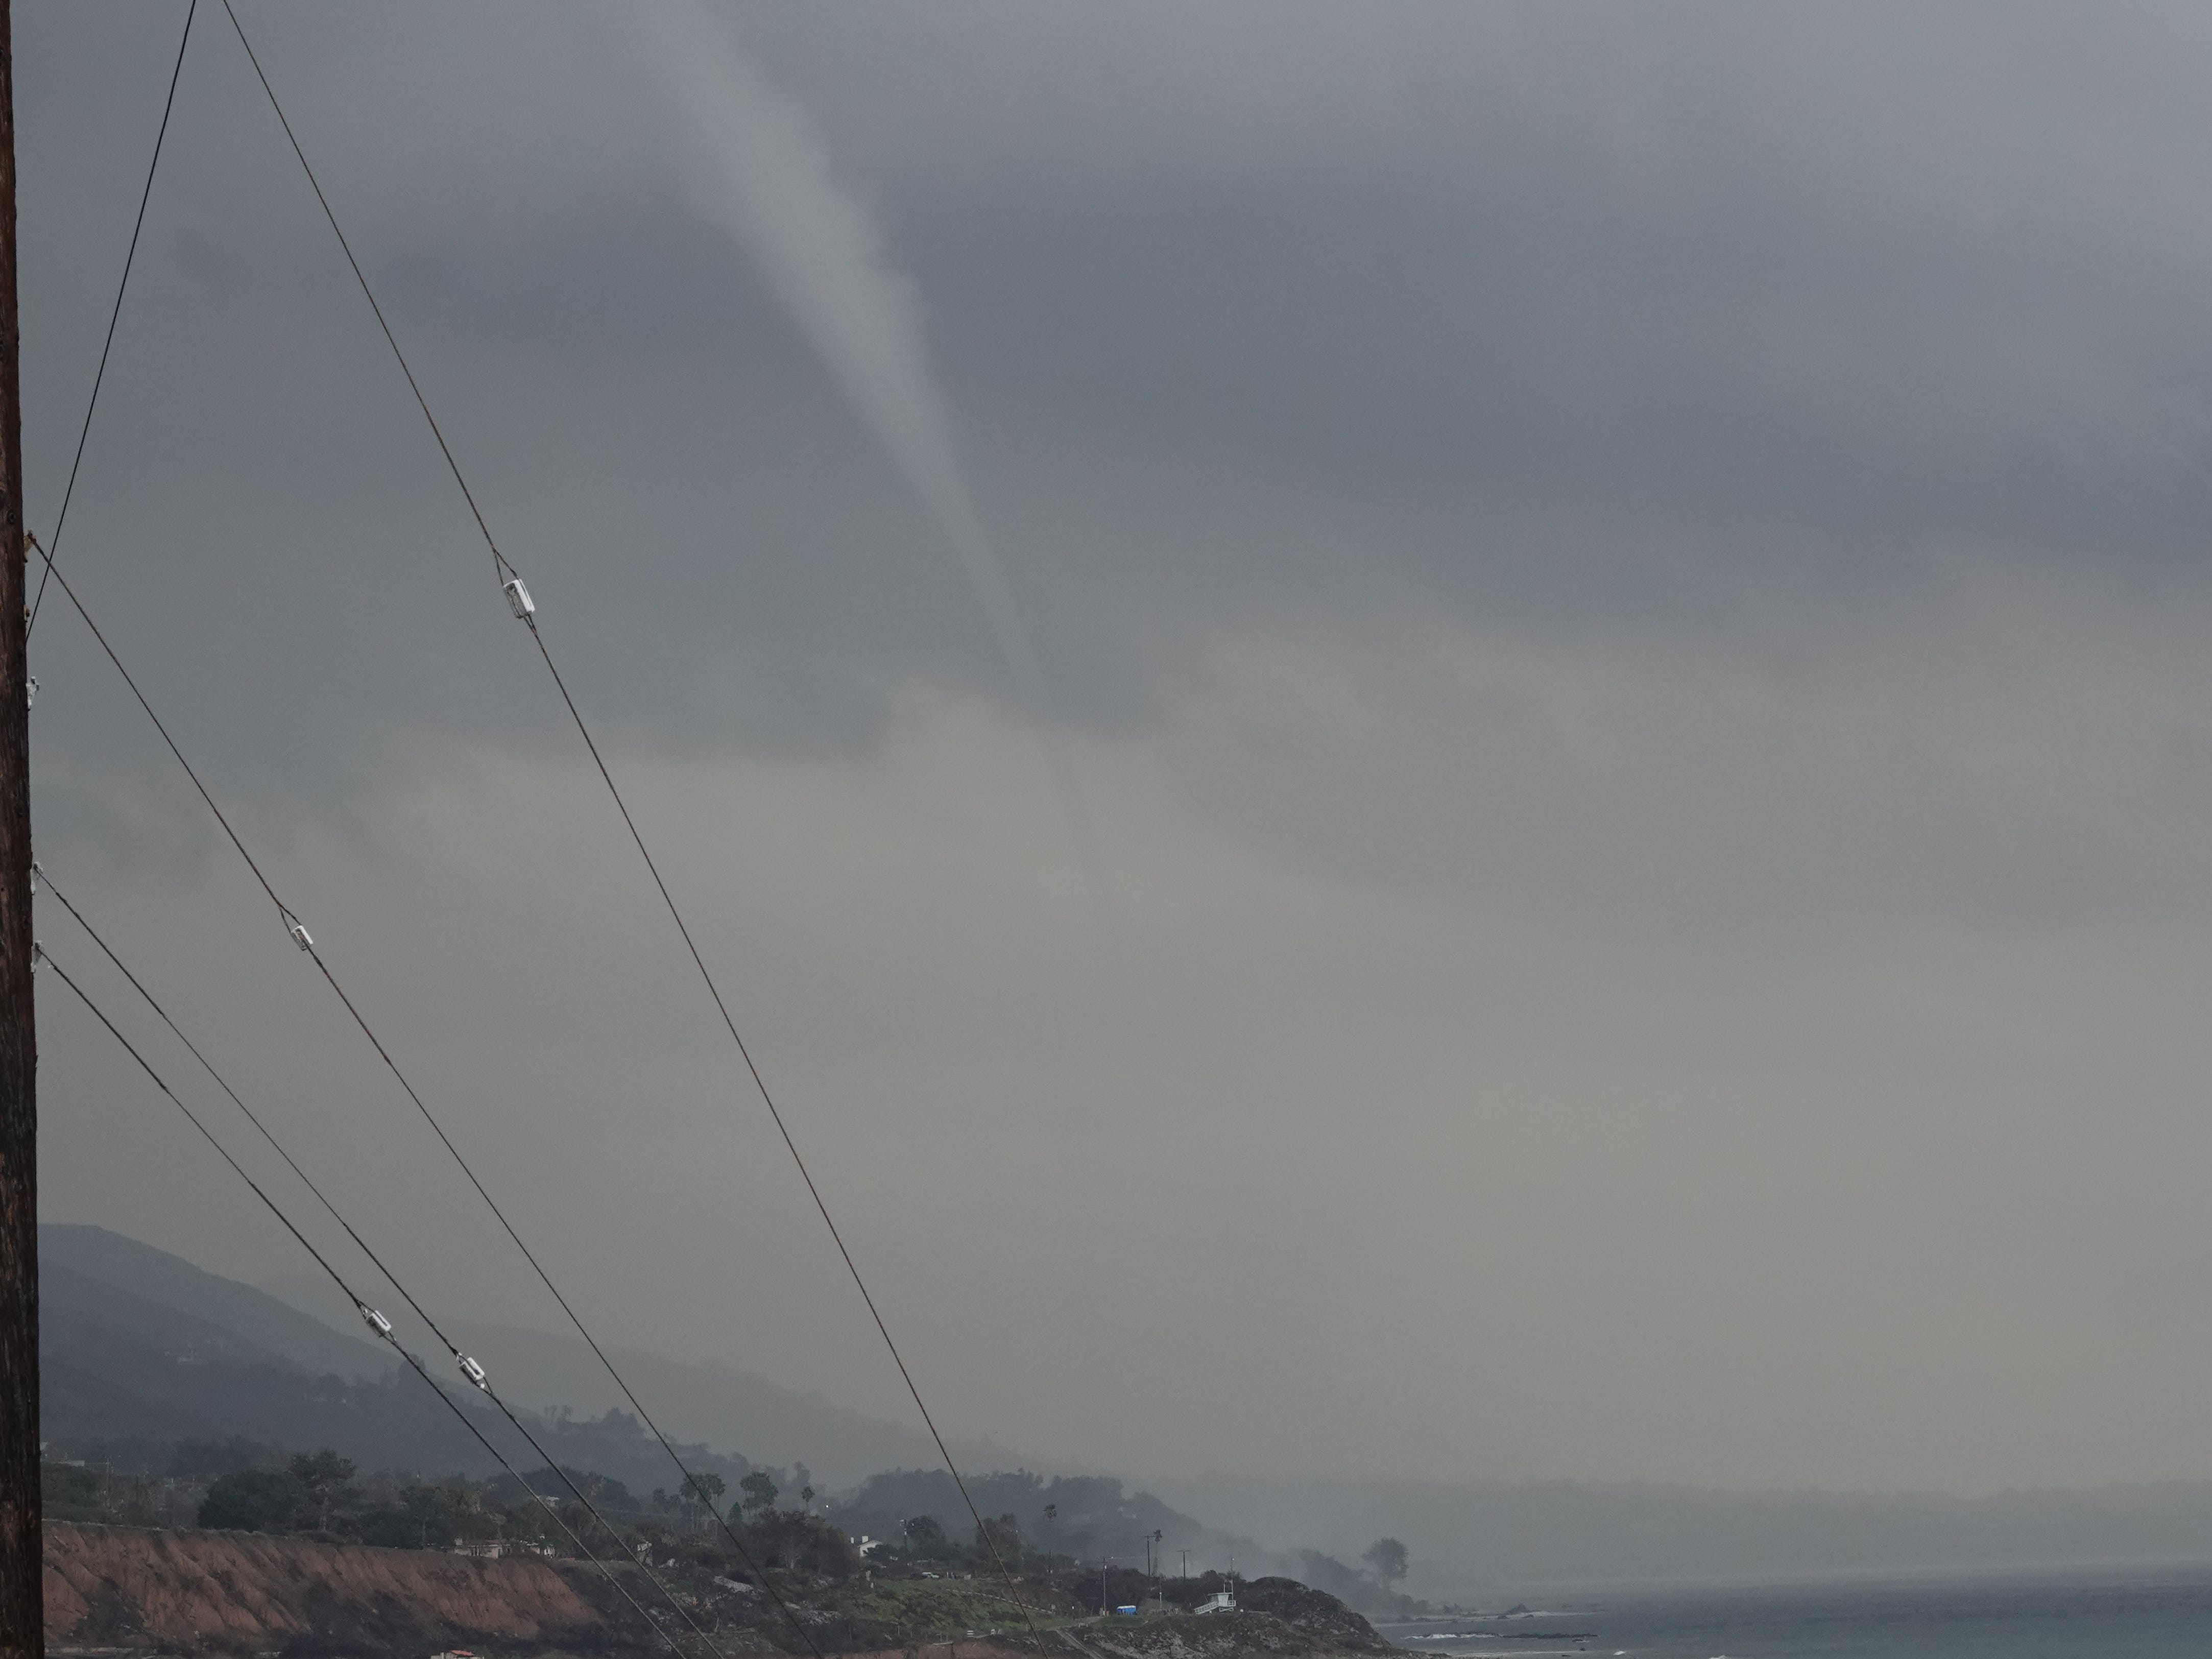 A funnel cloud moves toward shore off Pacific Coast Highway Saturday afternoon near the Ventura and Los Angeles county line as a storm system moved into the area.